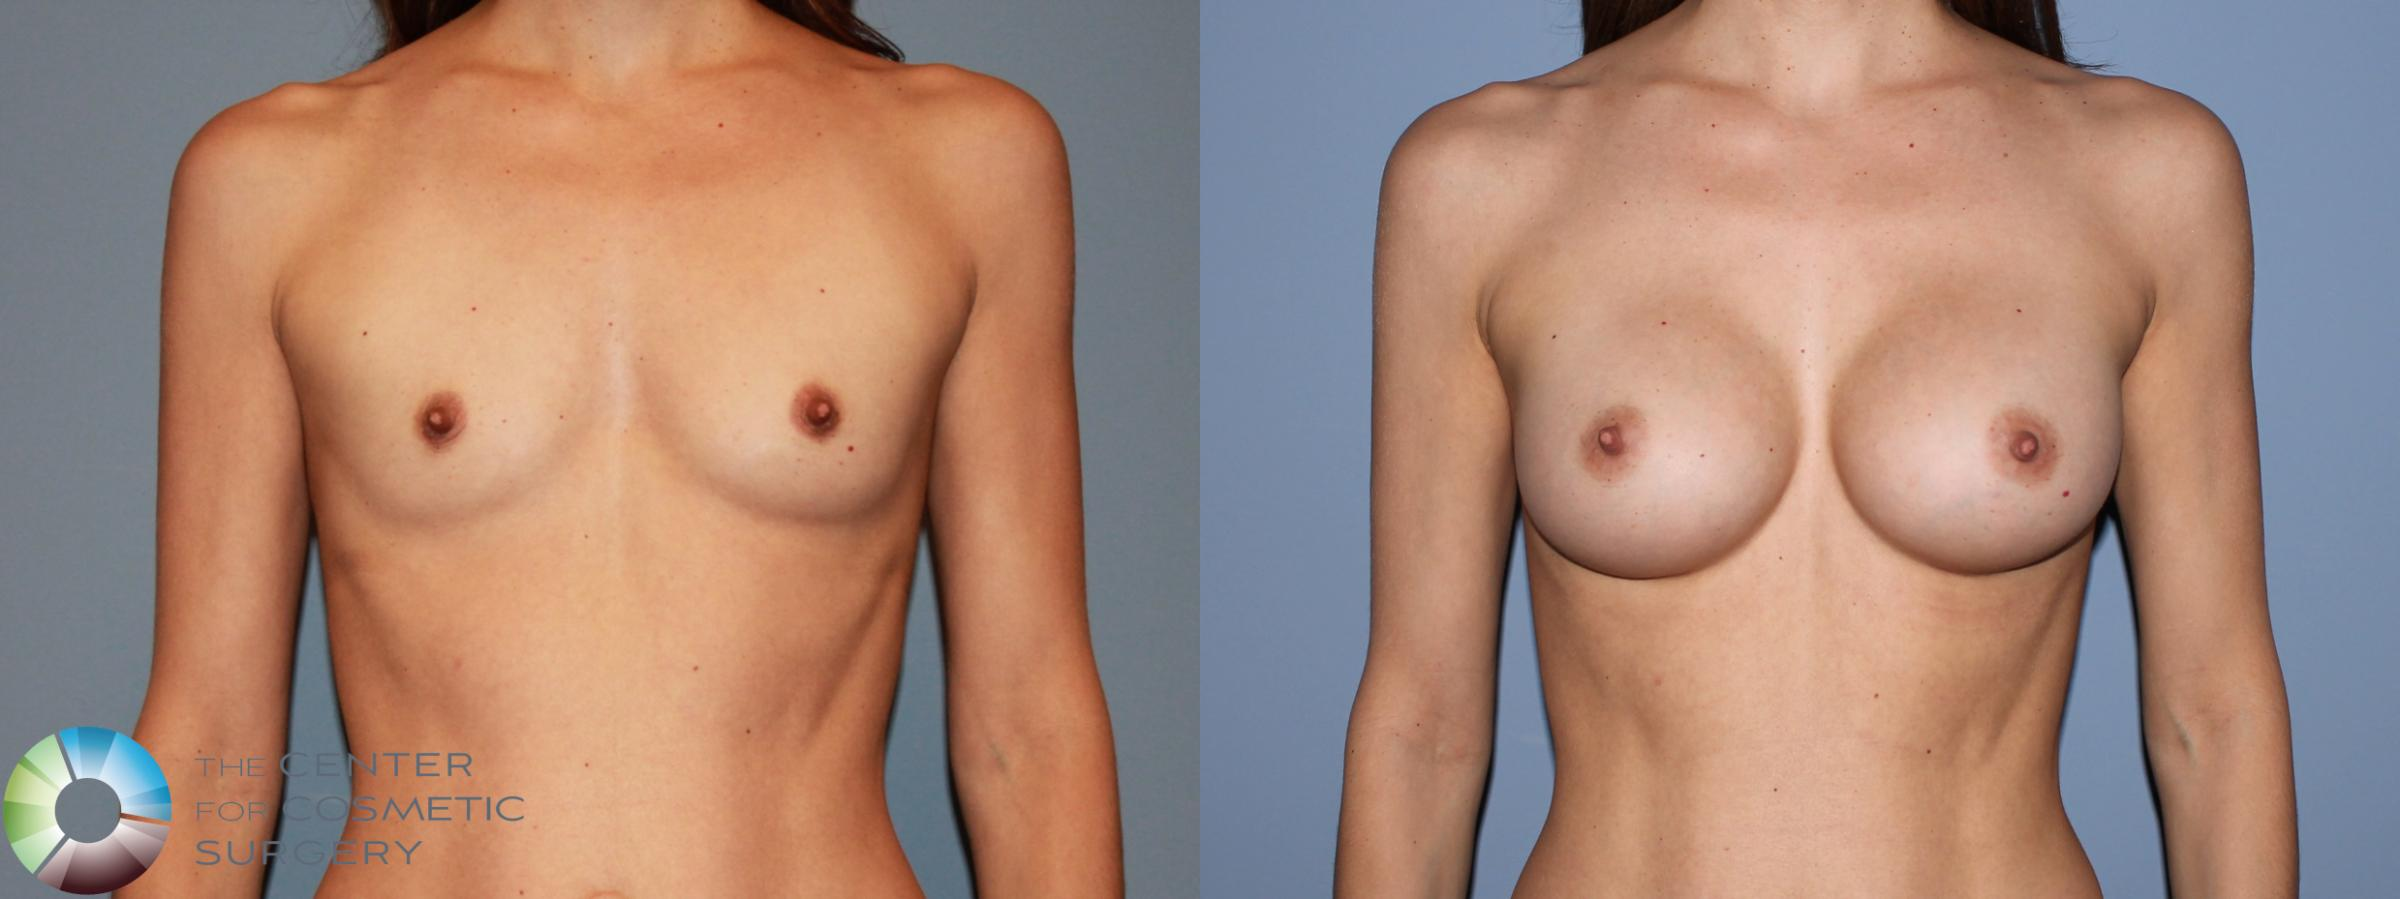 Breast Augmentation Case 481 Before & After View #1 | Golden, CO | The Center for Cosmetic Surgery